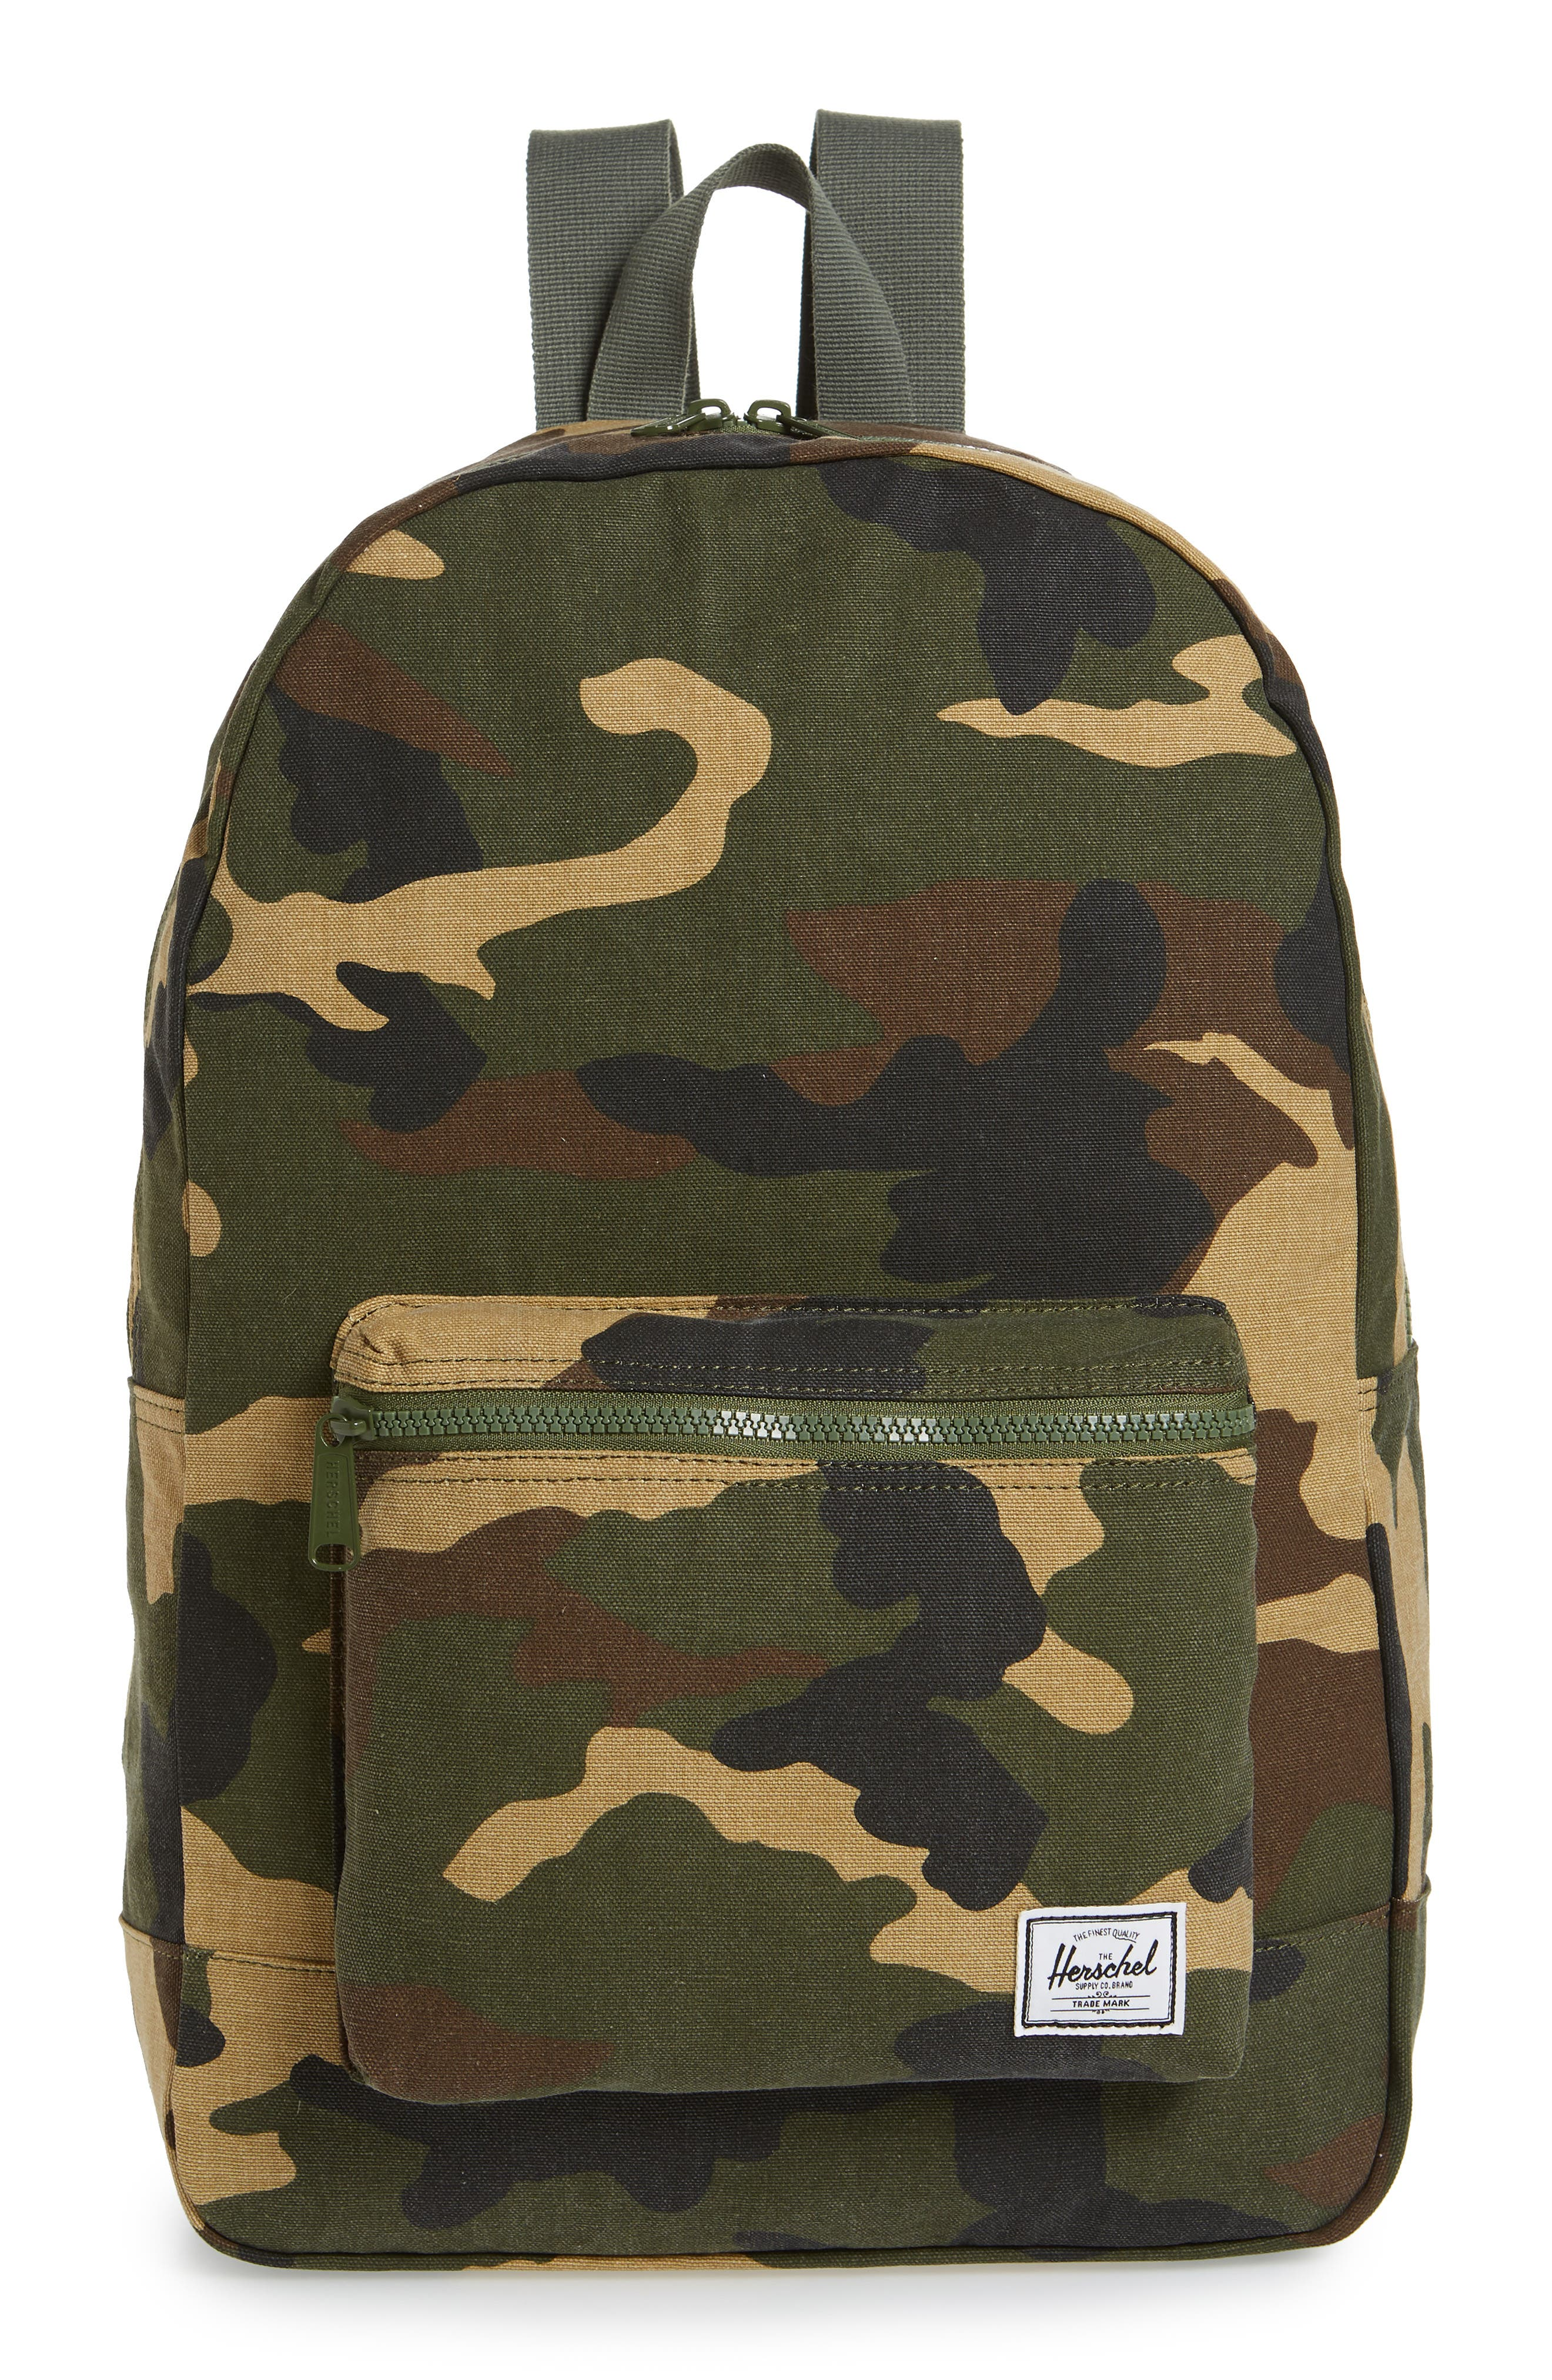 Cotton Casuals Daypack Backpack,                             Main thumbnail 2, color,